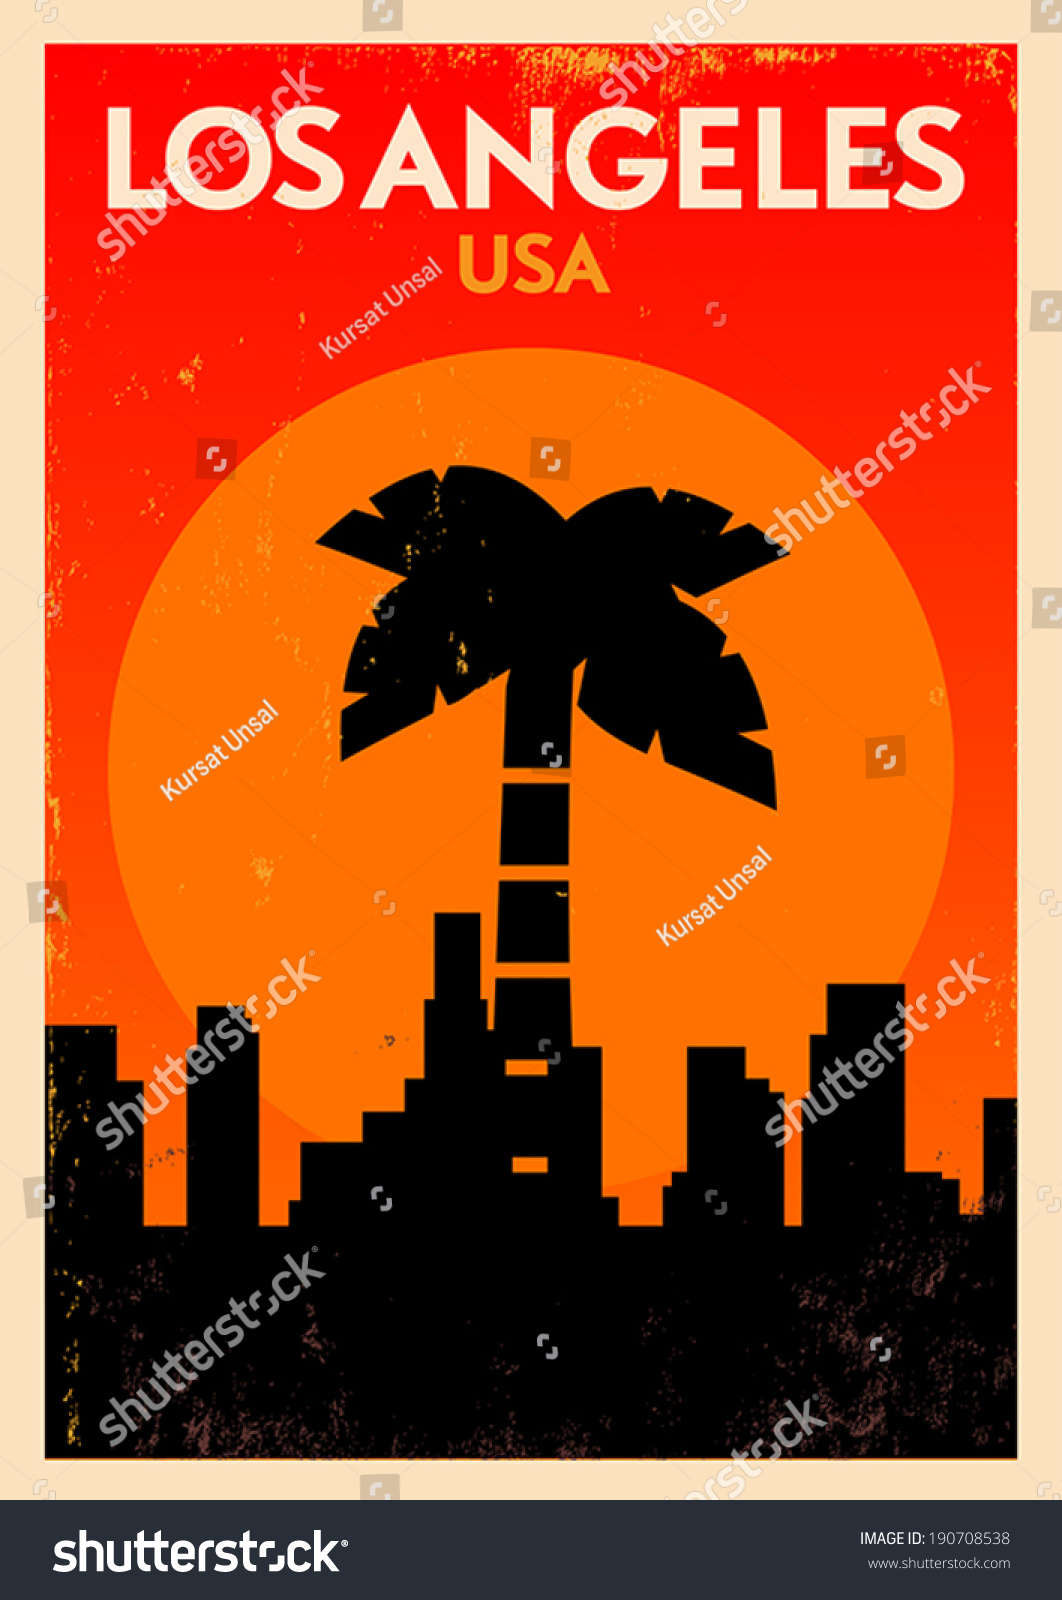 Poster design los angeles - Typographic Los Angeles City Poster Design